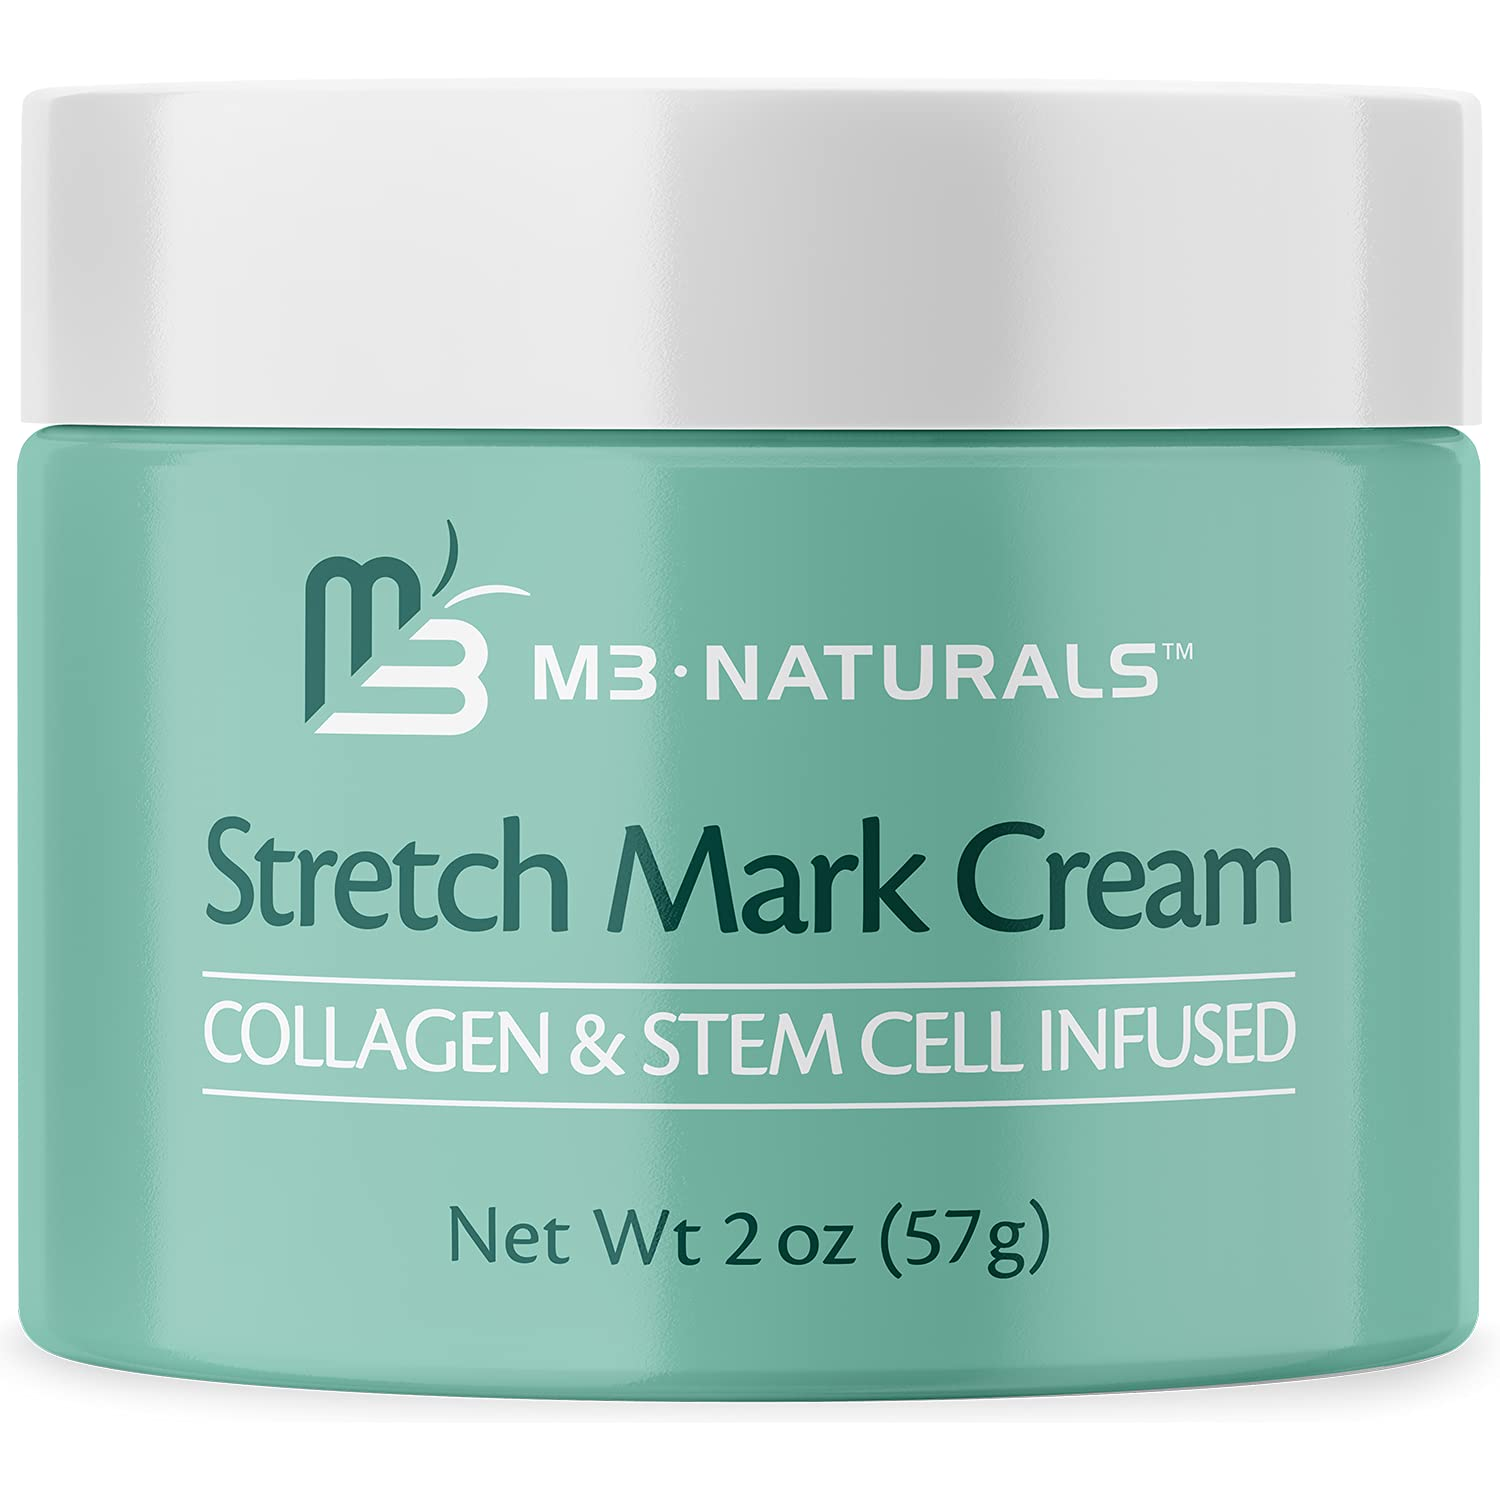 M3 Naturals Stretch Mark Cream Infused 25% San Francisco Mall OFF Collagen Stem Ce and with